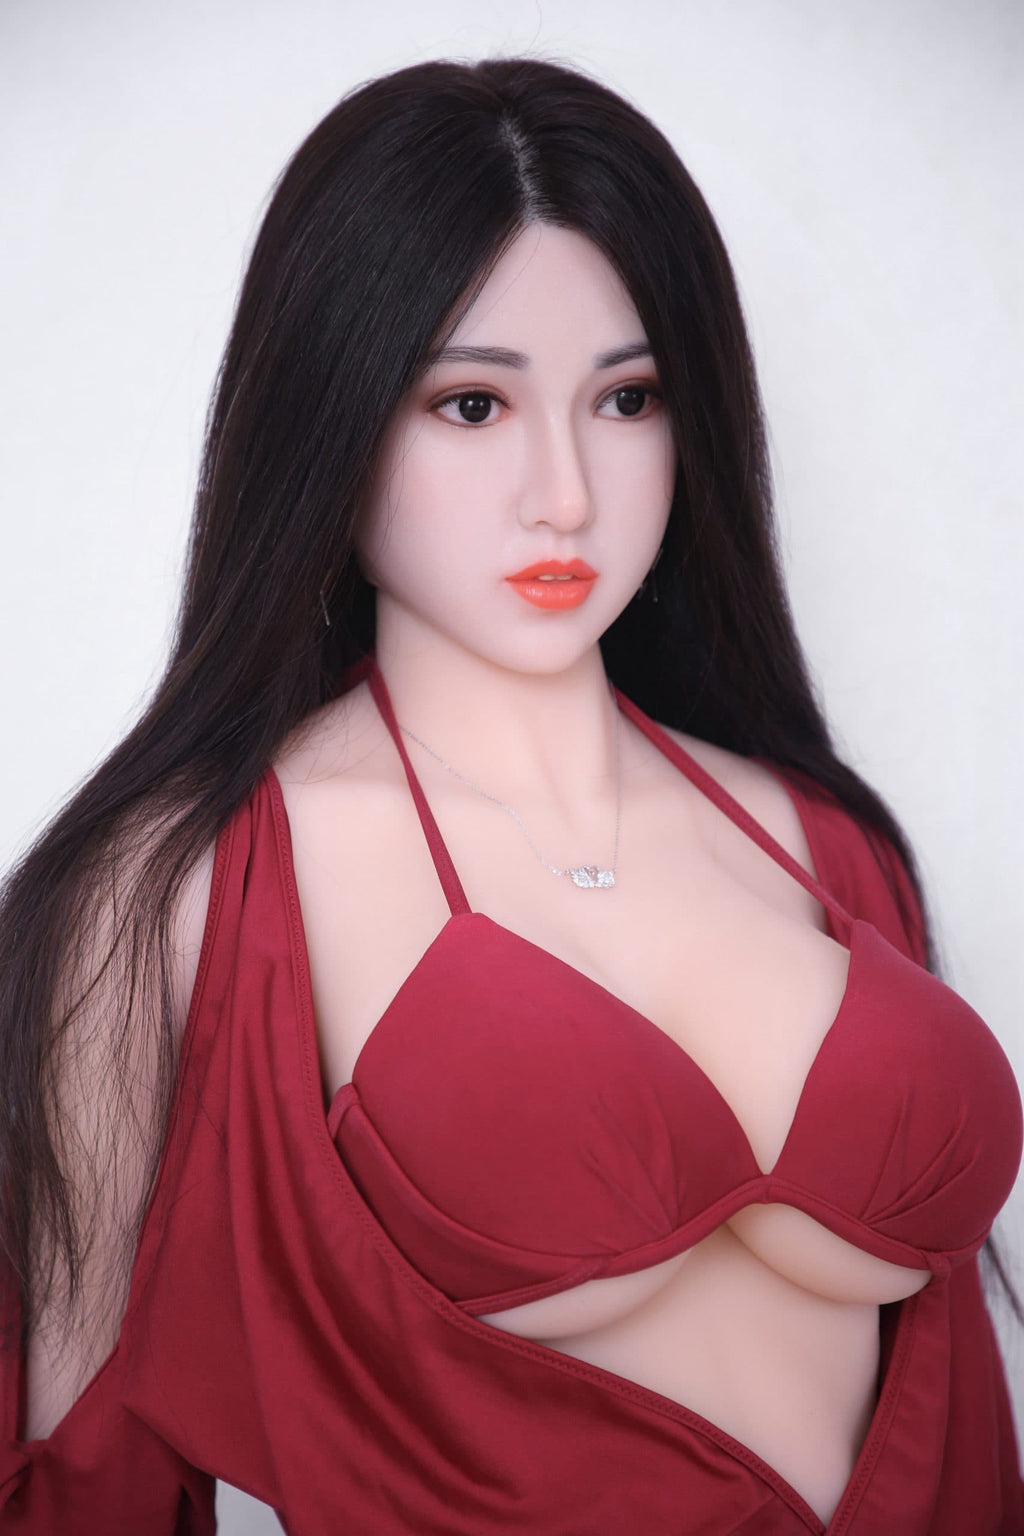 arianna 165cm af black hair big boobs athletic tpe sex doll